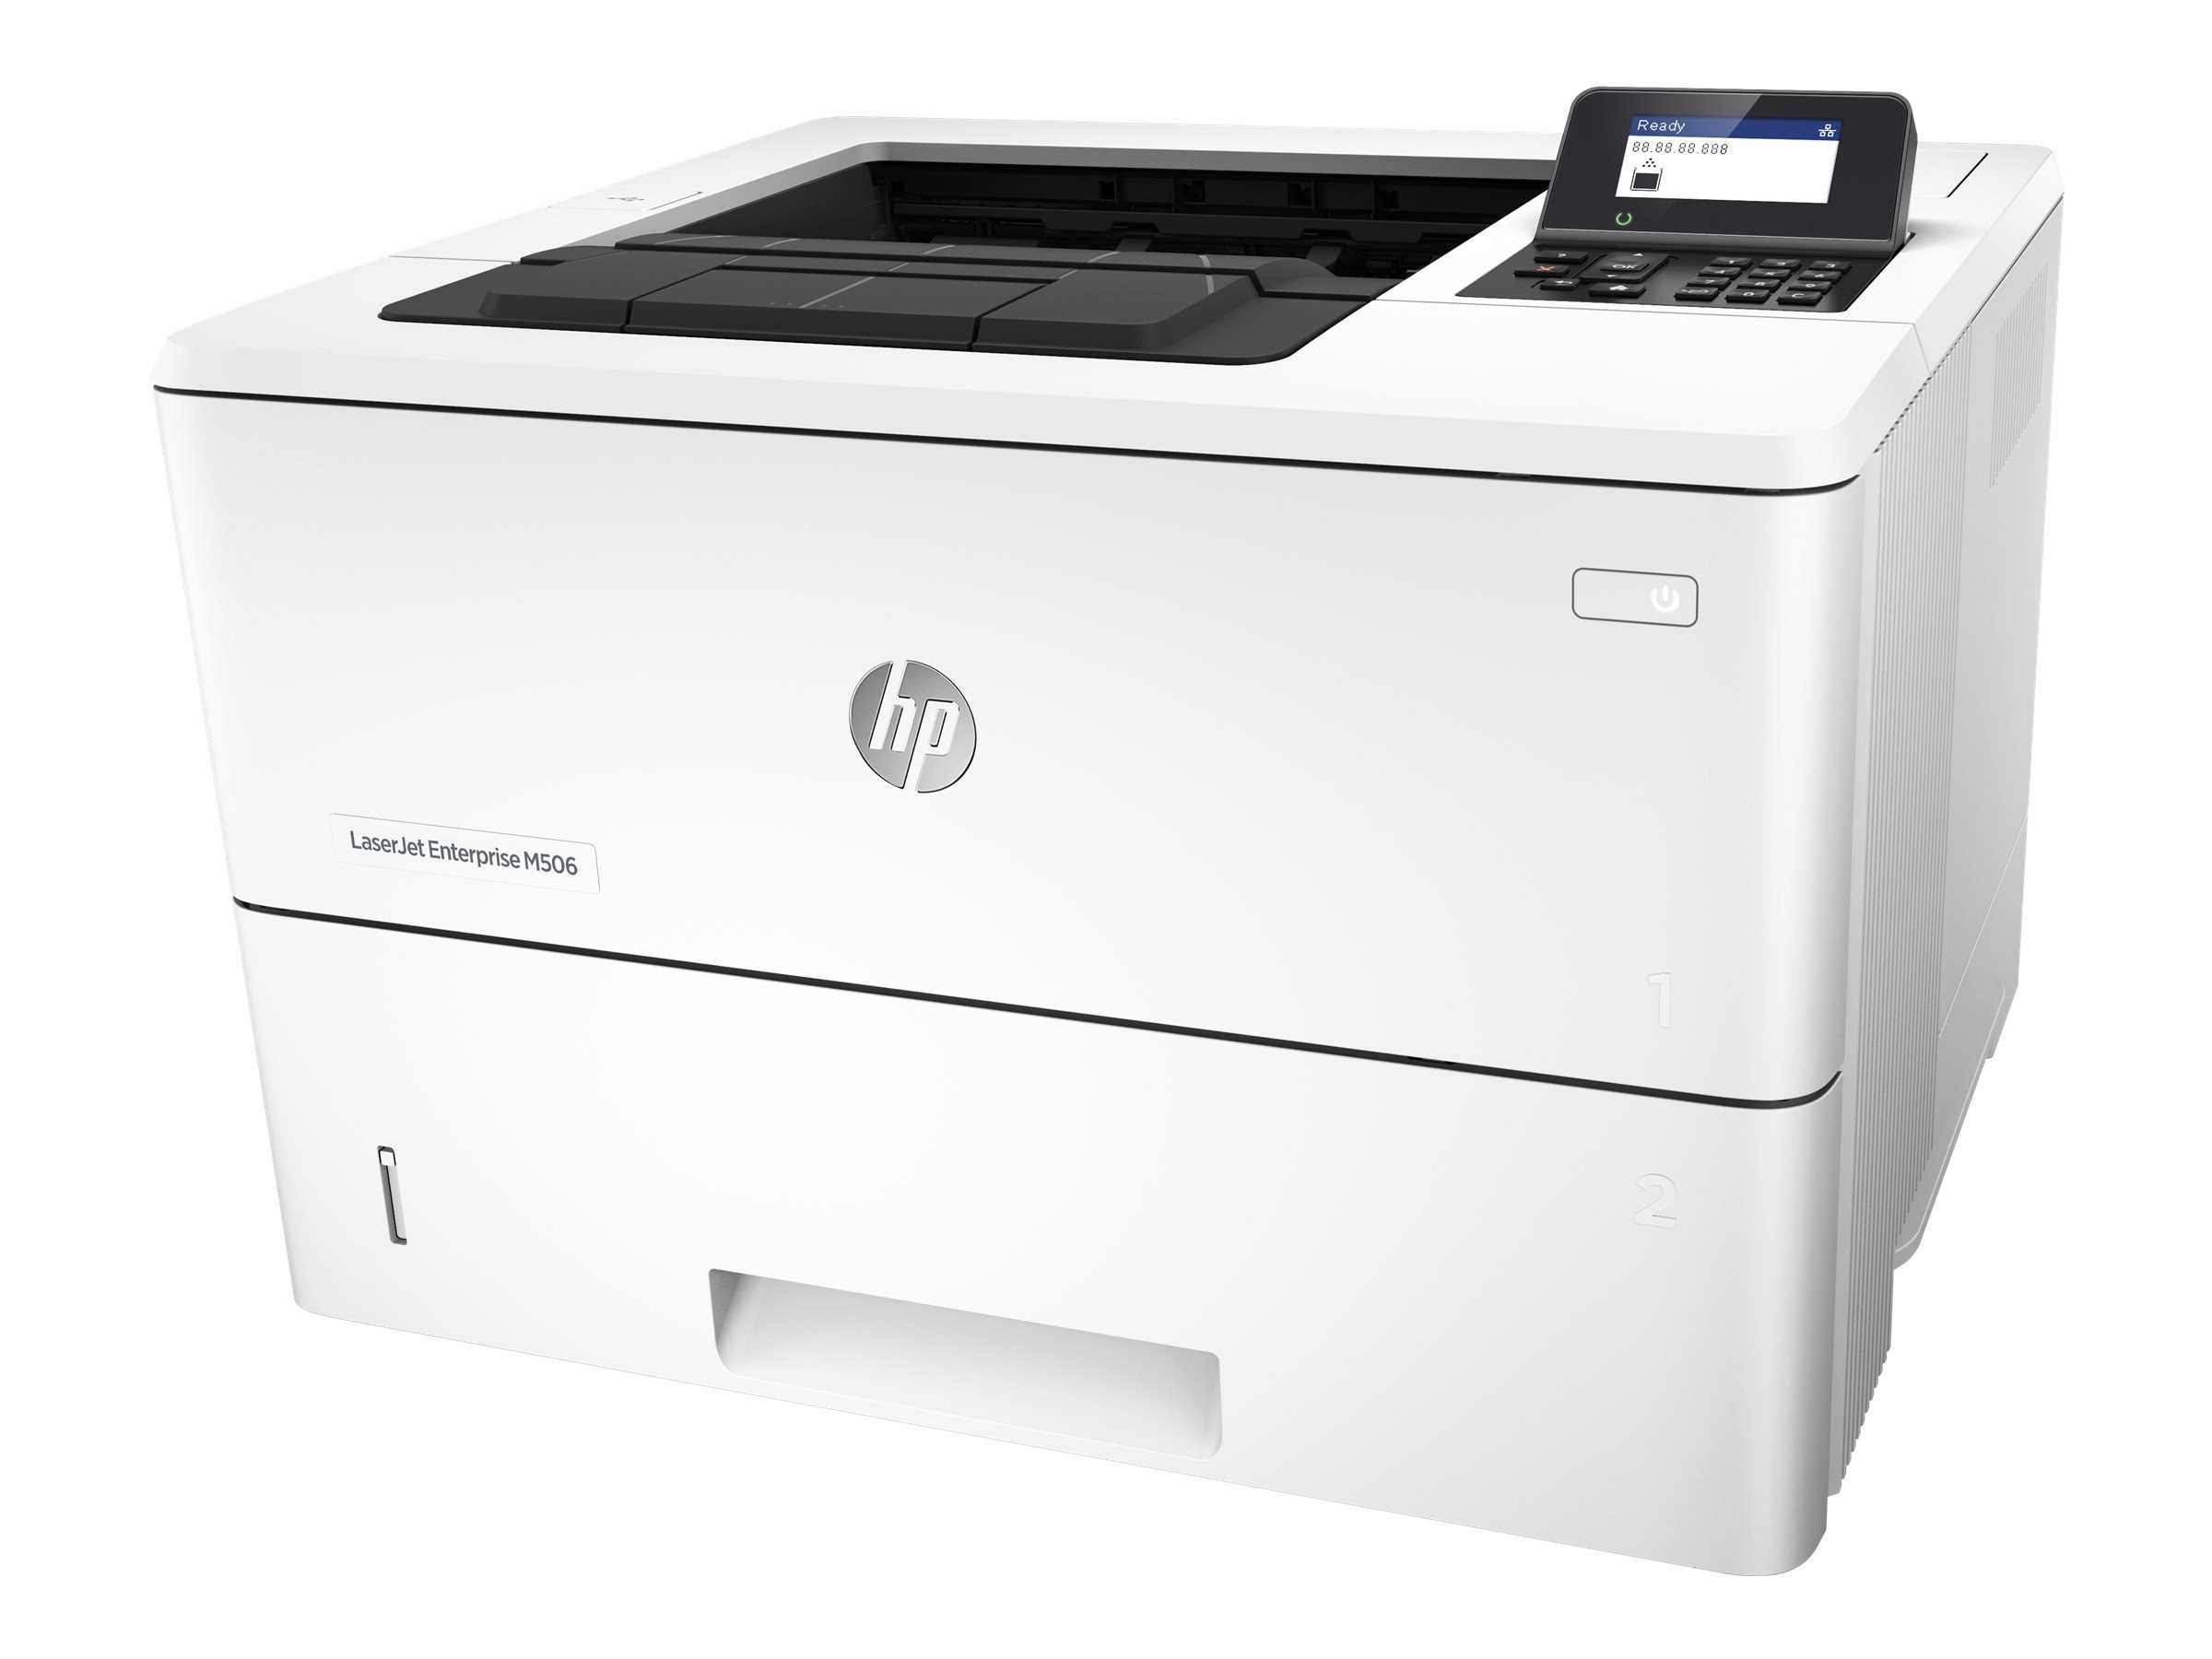 HP LaserJet Enterprise M506n Printer, F2A68A#BGJ, 30006411, Printers - Laser & LED (monochrome)